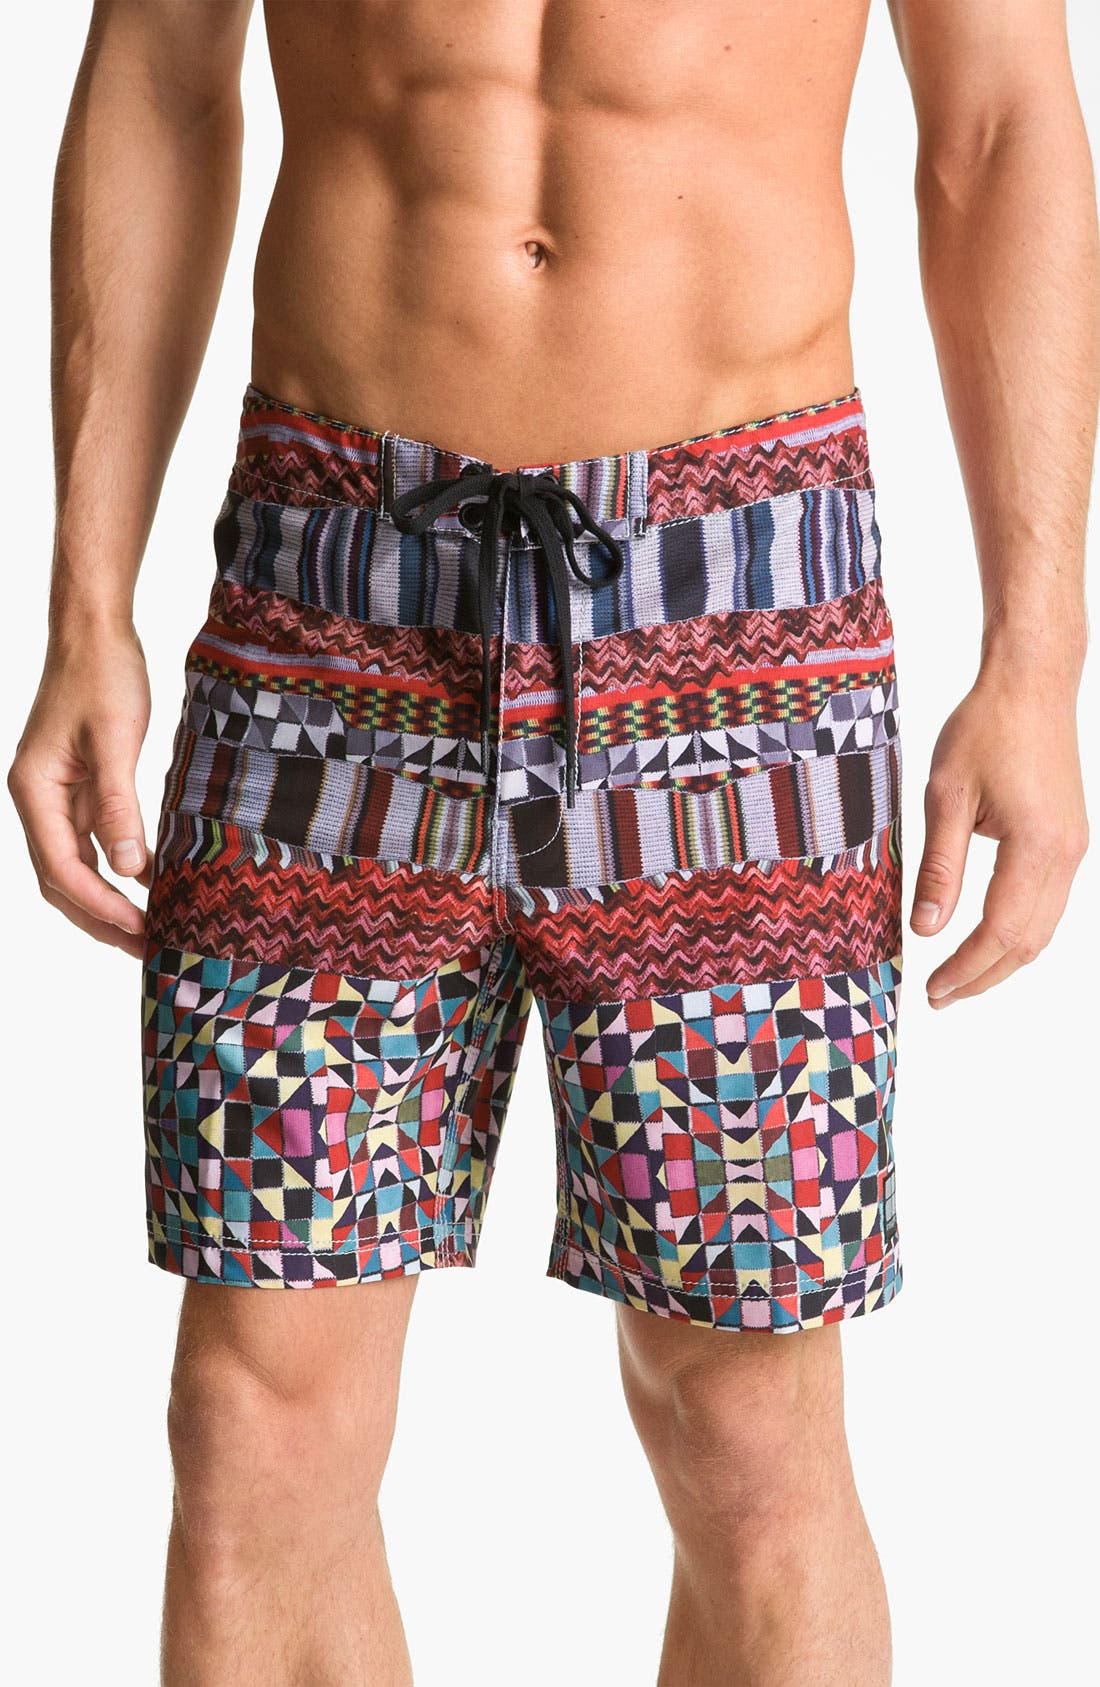 Alternate Image 1 Selected - Insight 'Knitta Mind' Board Shorts